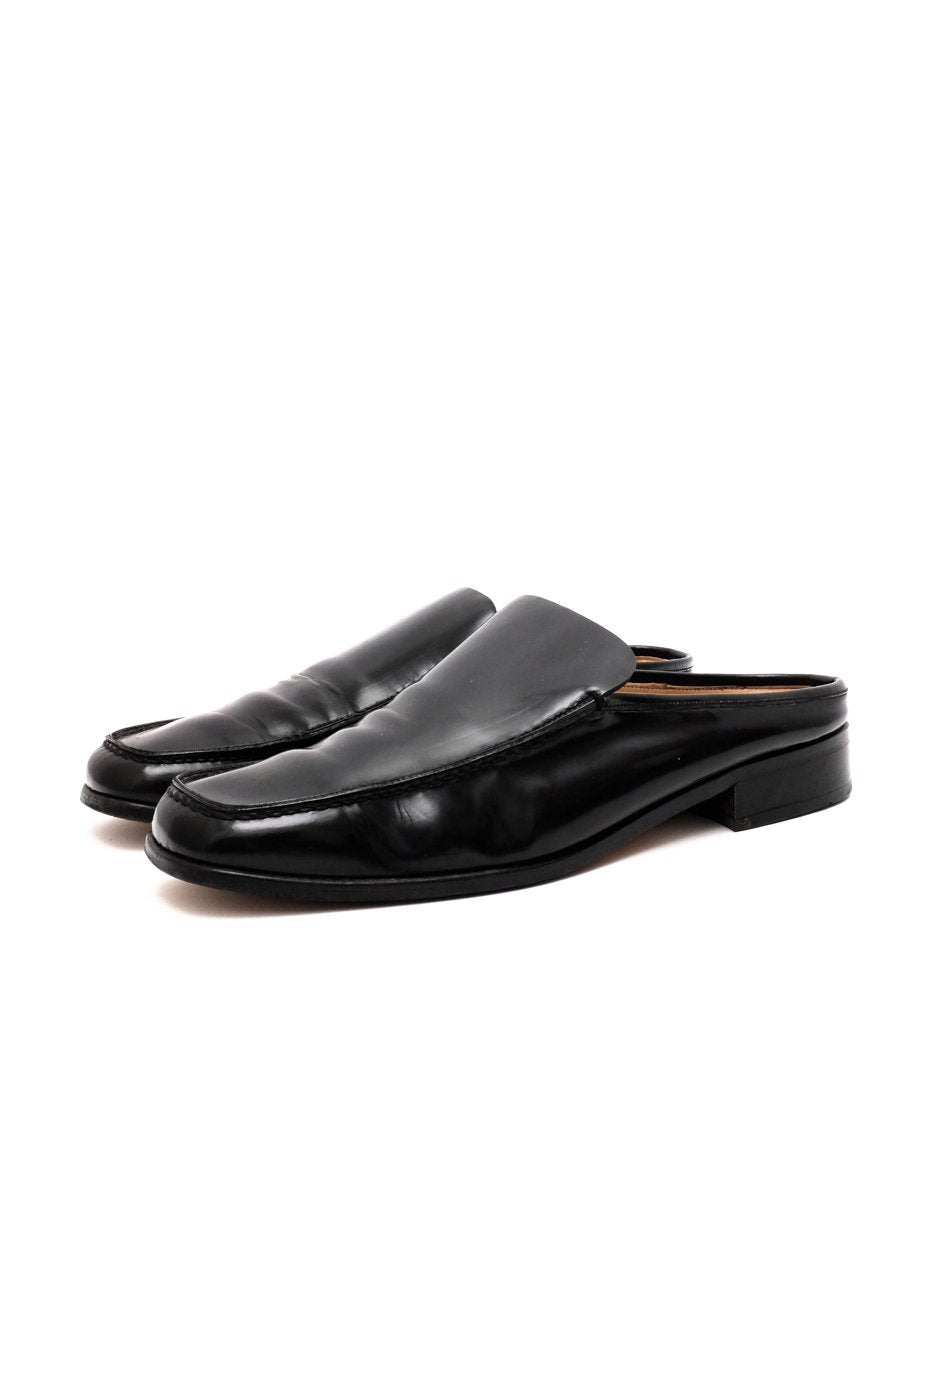 0498_SLIDS 38 39 BLACK LEATHER VINTAGE LOAFERS